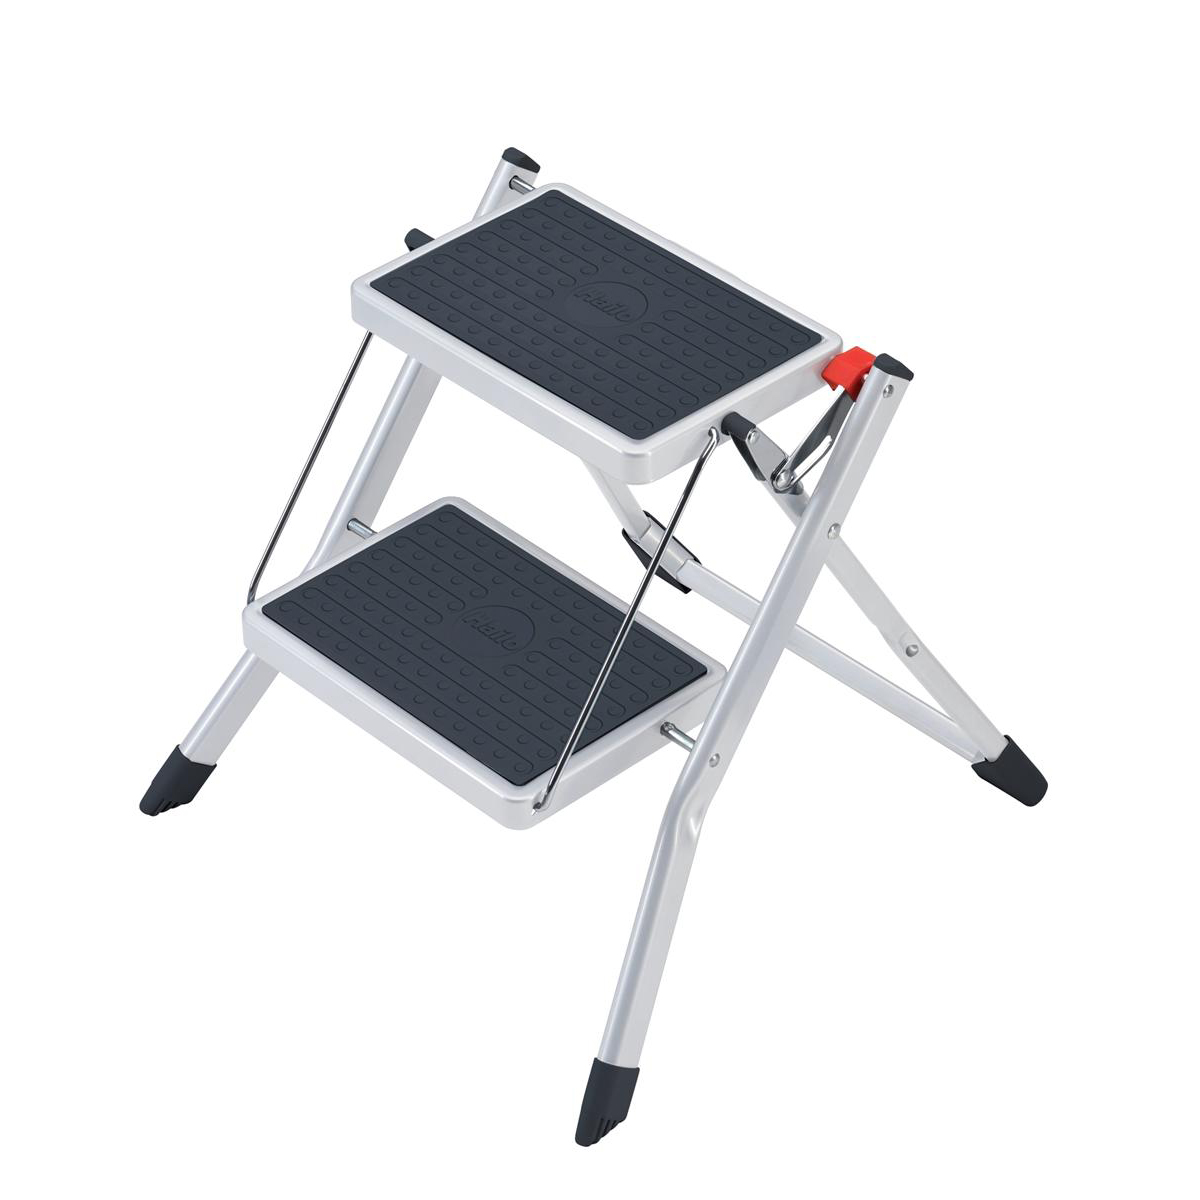 Step stool 5 Star Facilities Mini Stool/Ladder Two Step Steel Folding Single Sided Load Capacity 150kg